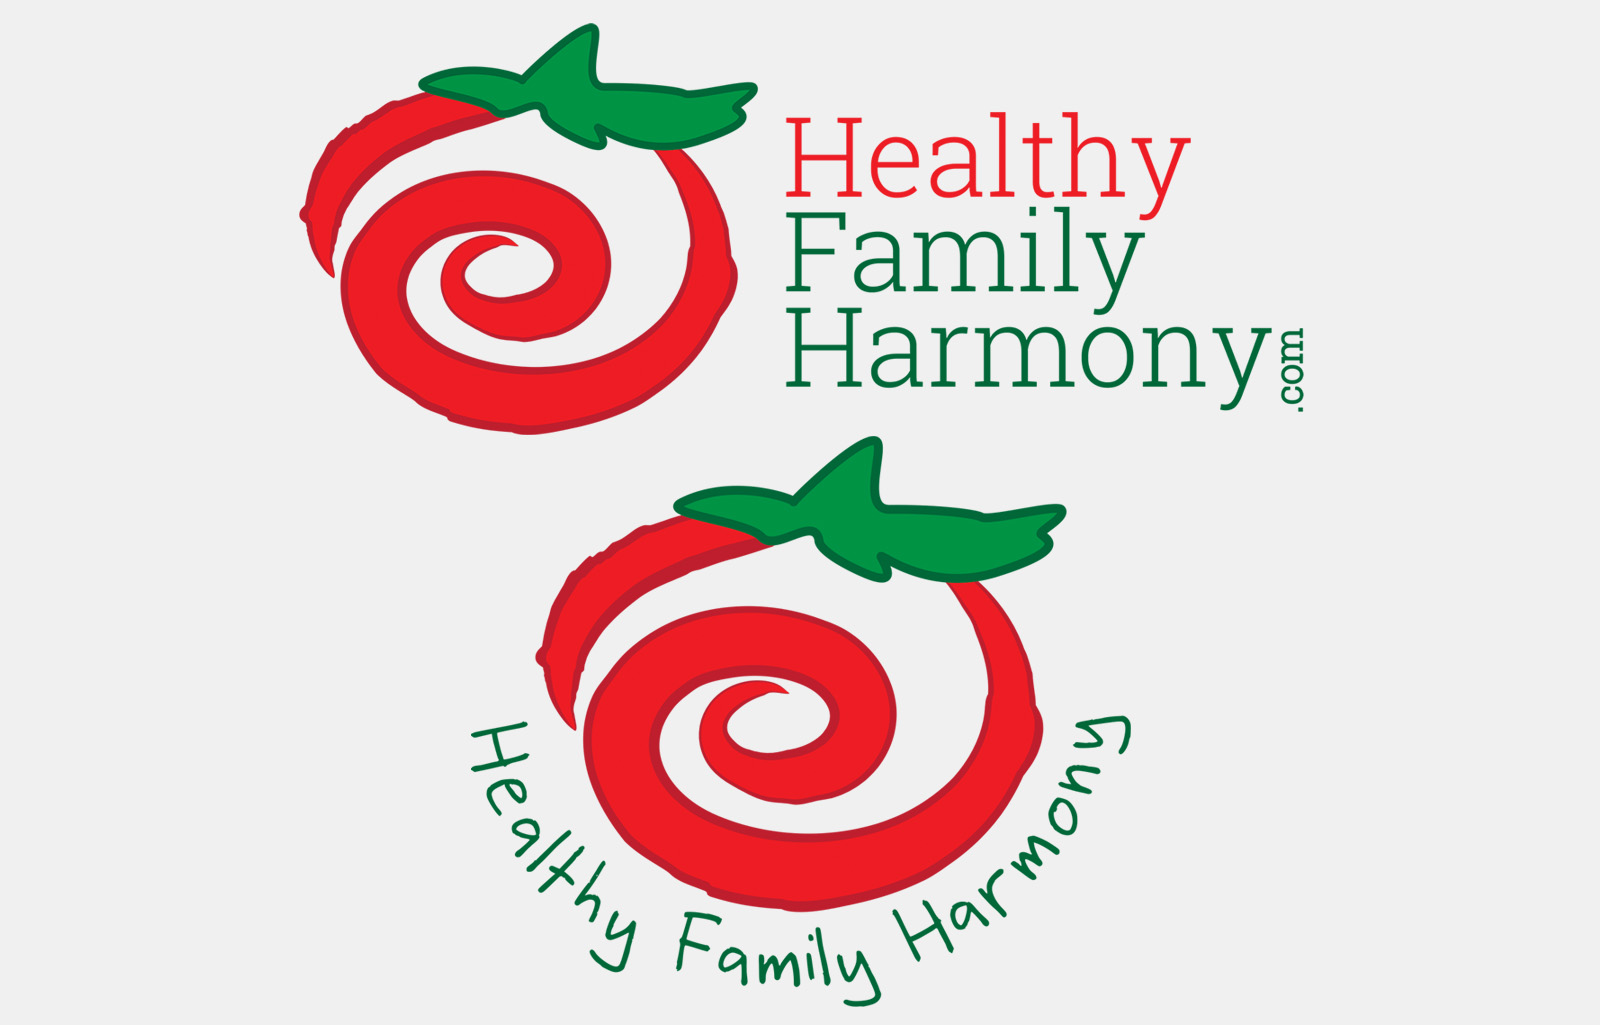 Healthy Family Harmony logo